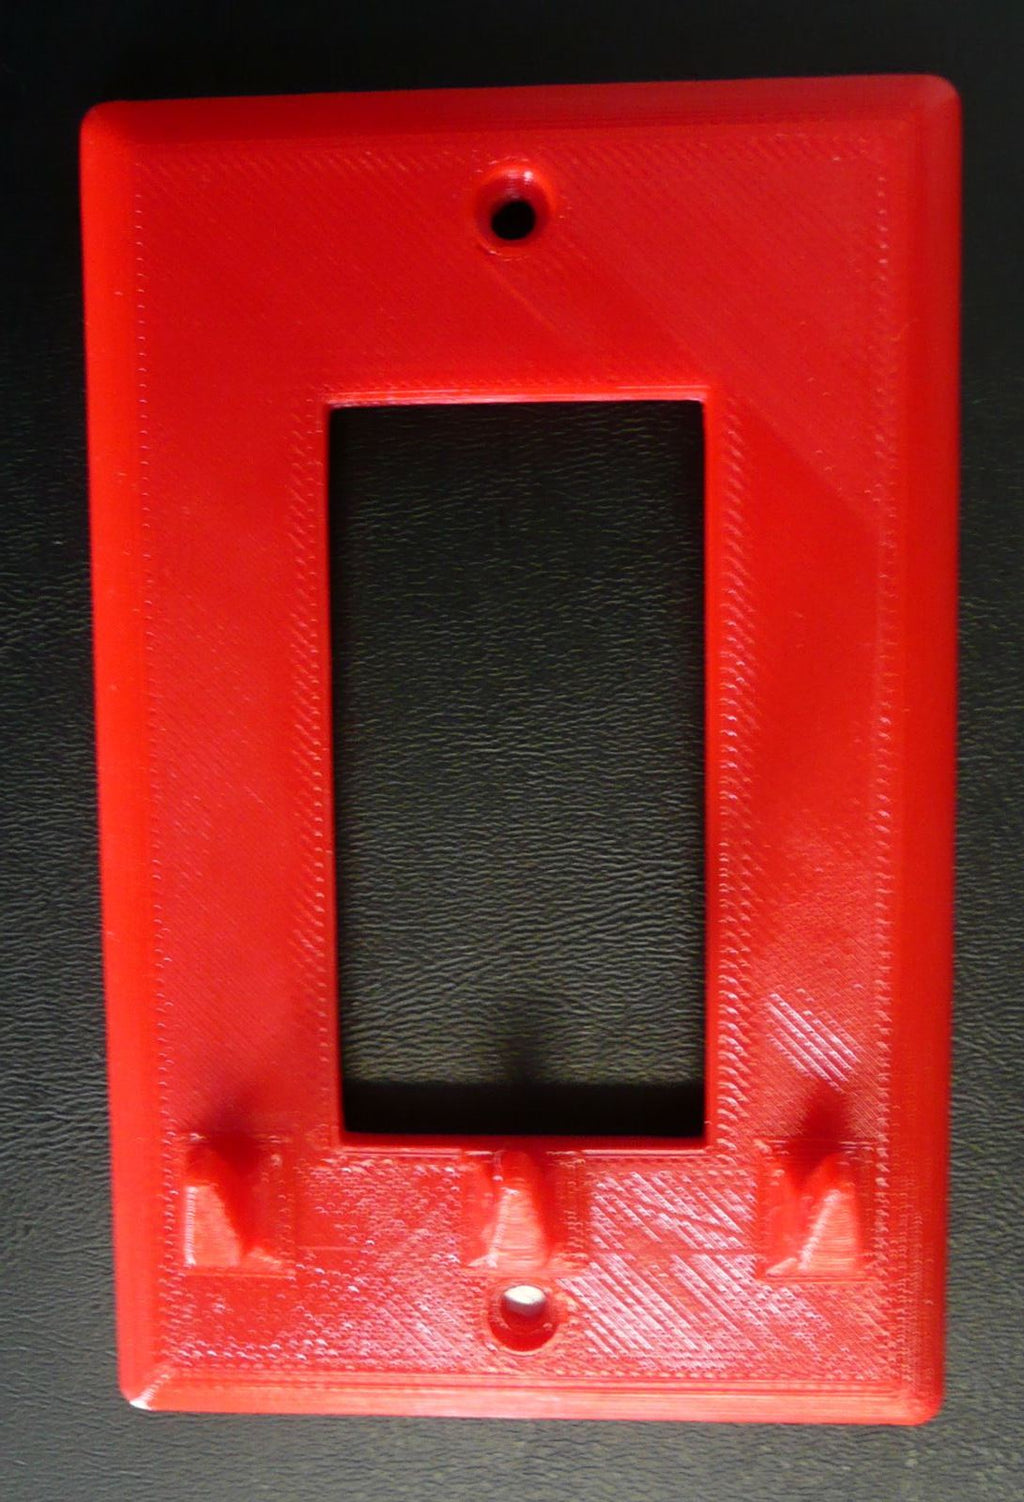 Light Switch Cover With 3 Hooks For Keys Triple Hook Multi Purpose 3D Printed - Made In USA PR55